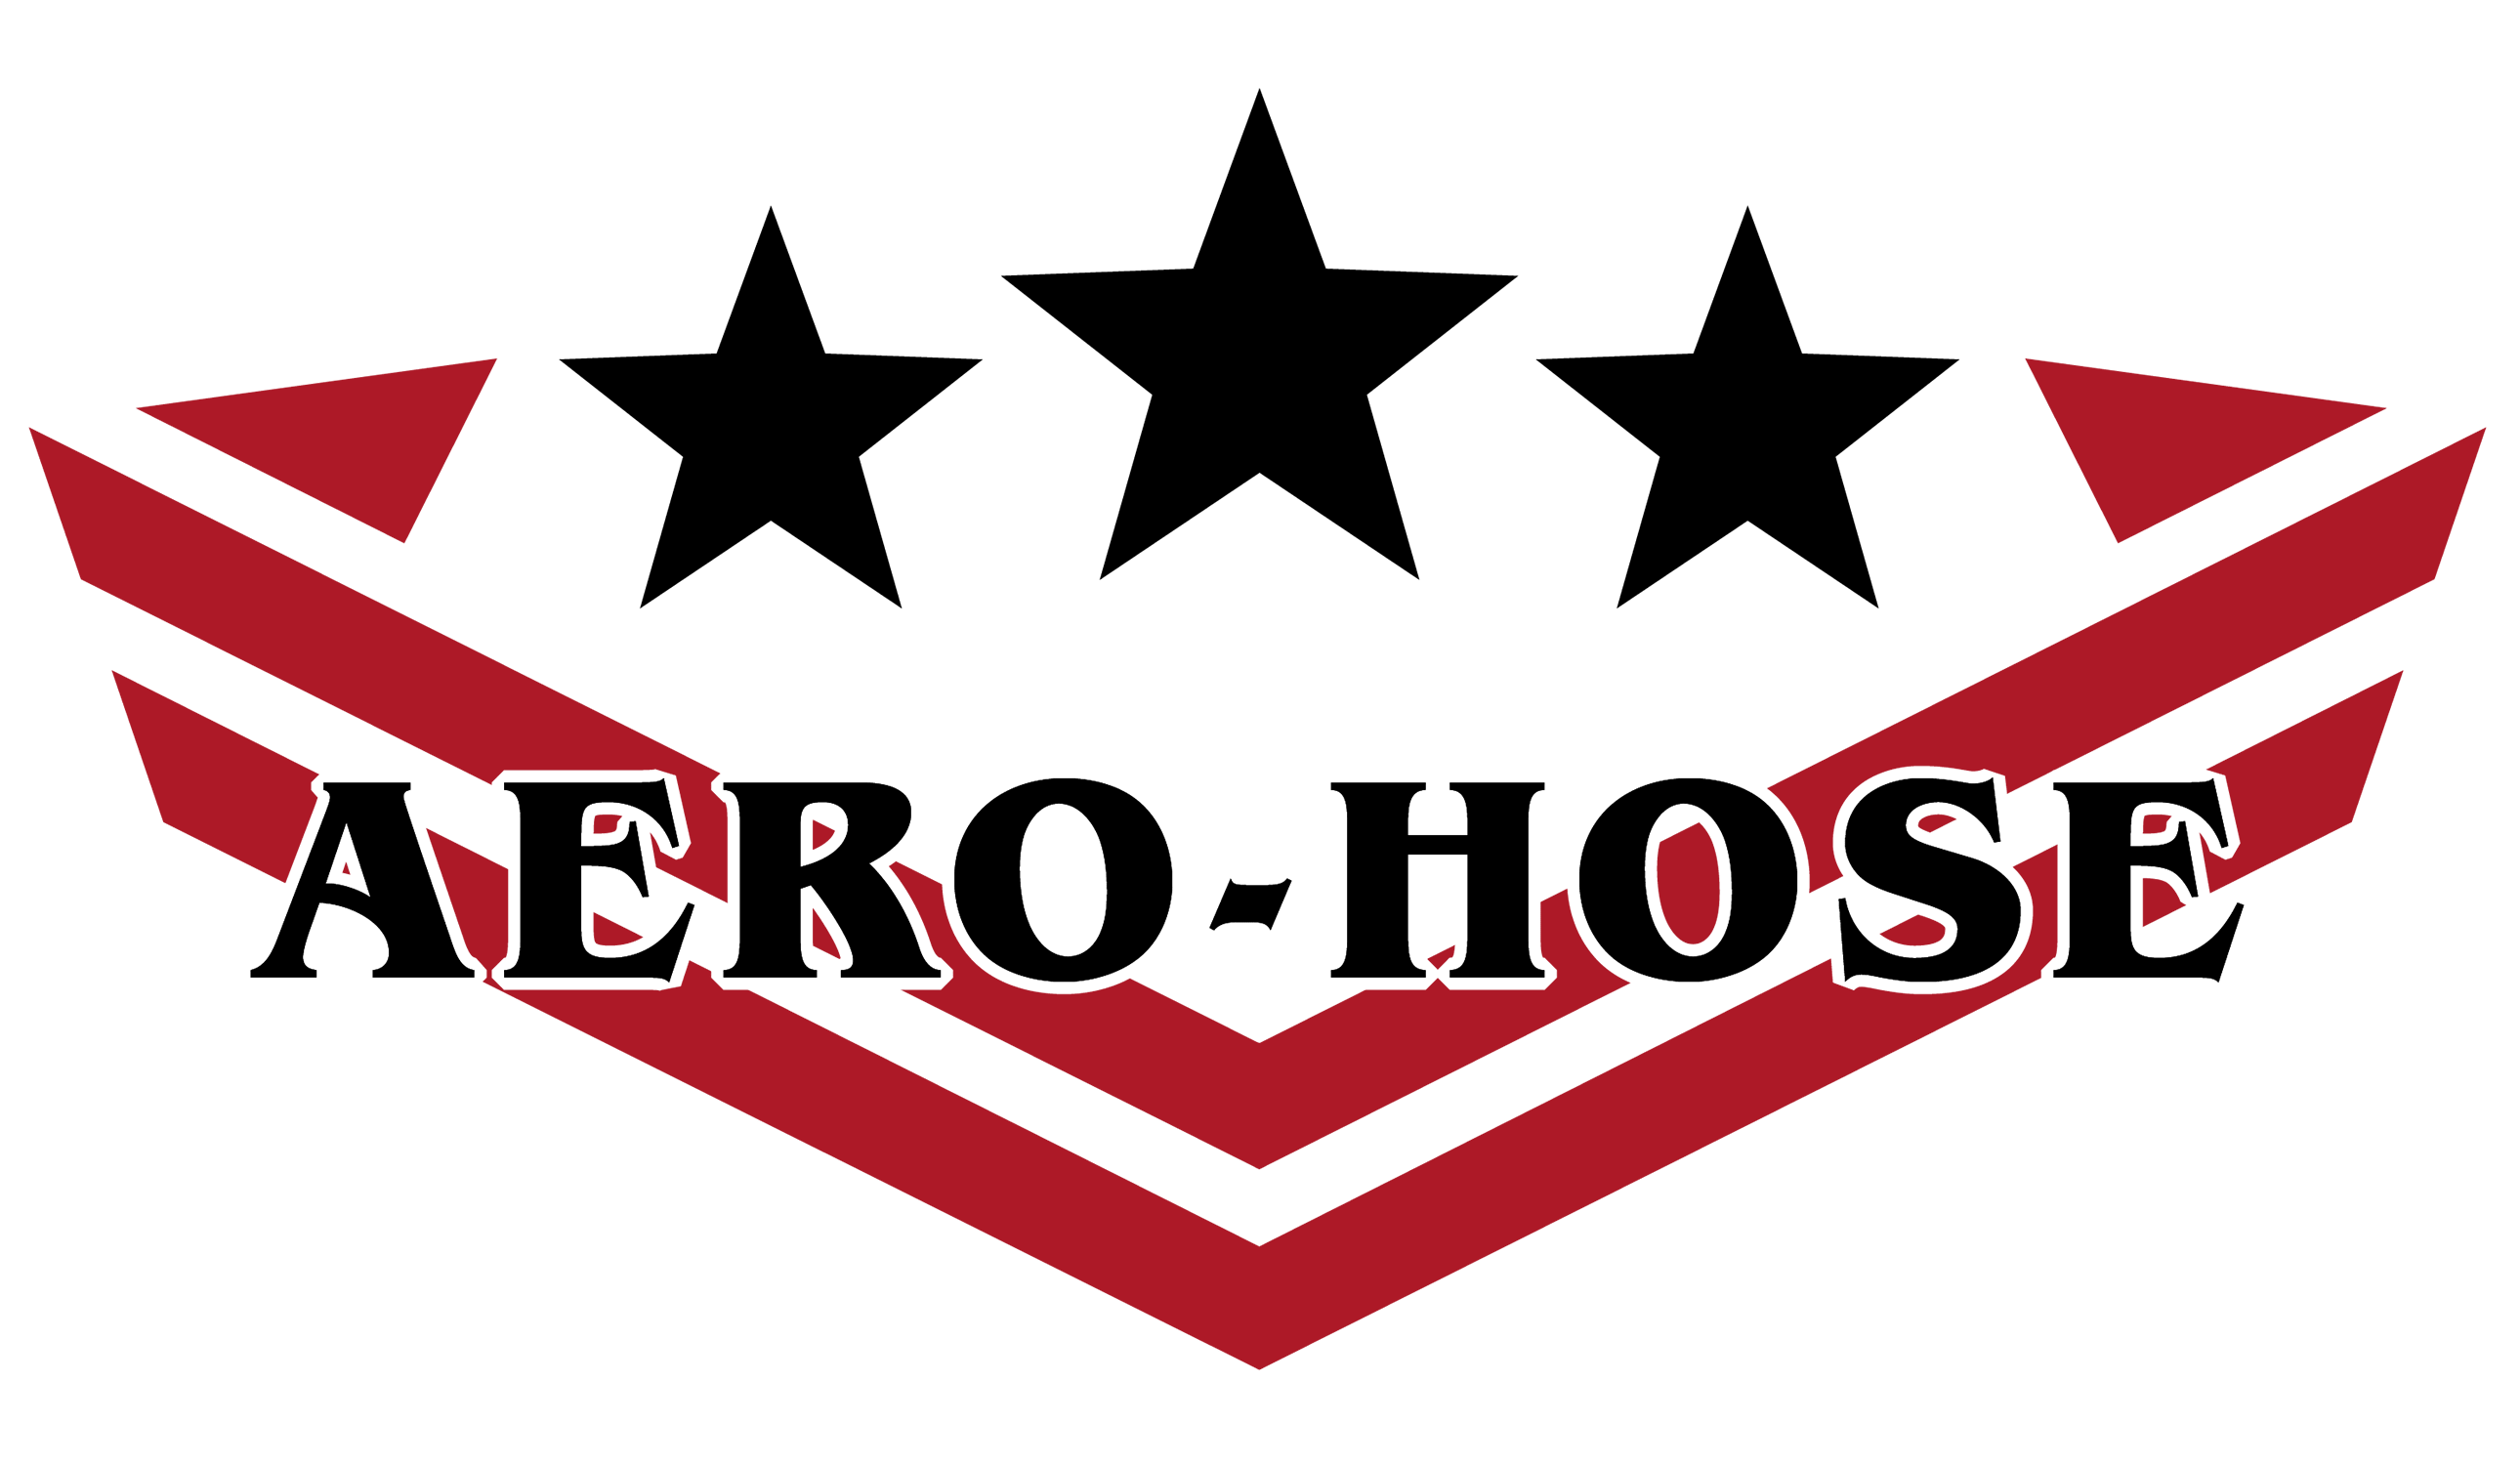 Aero-hose-logo-full-color